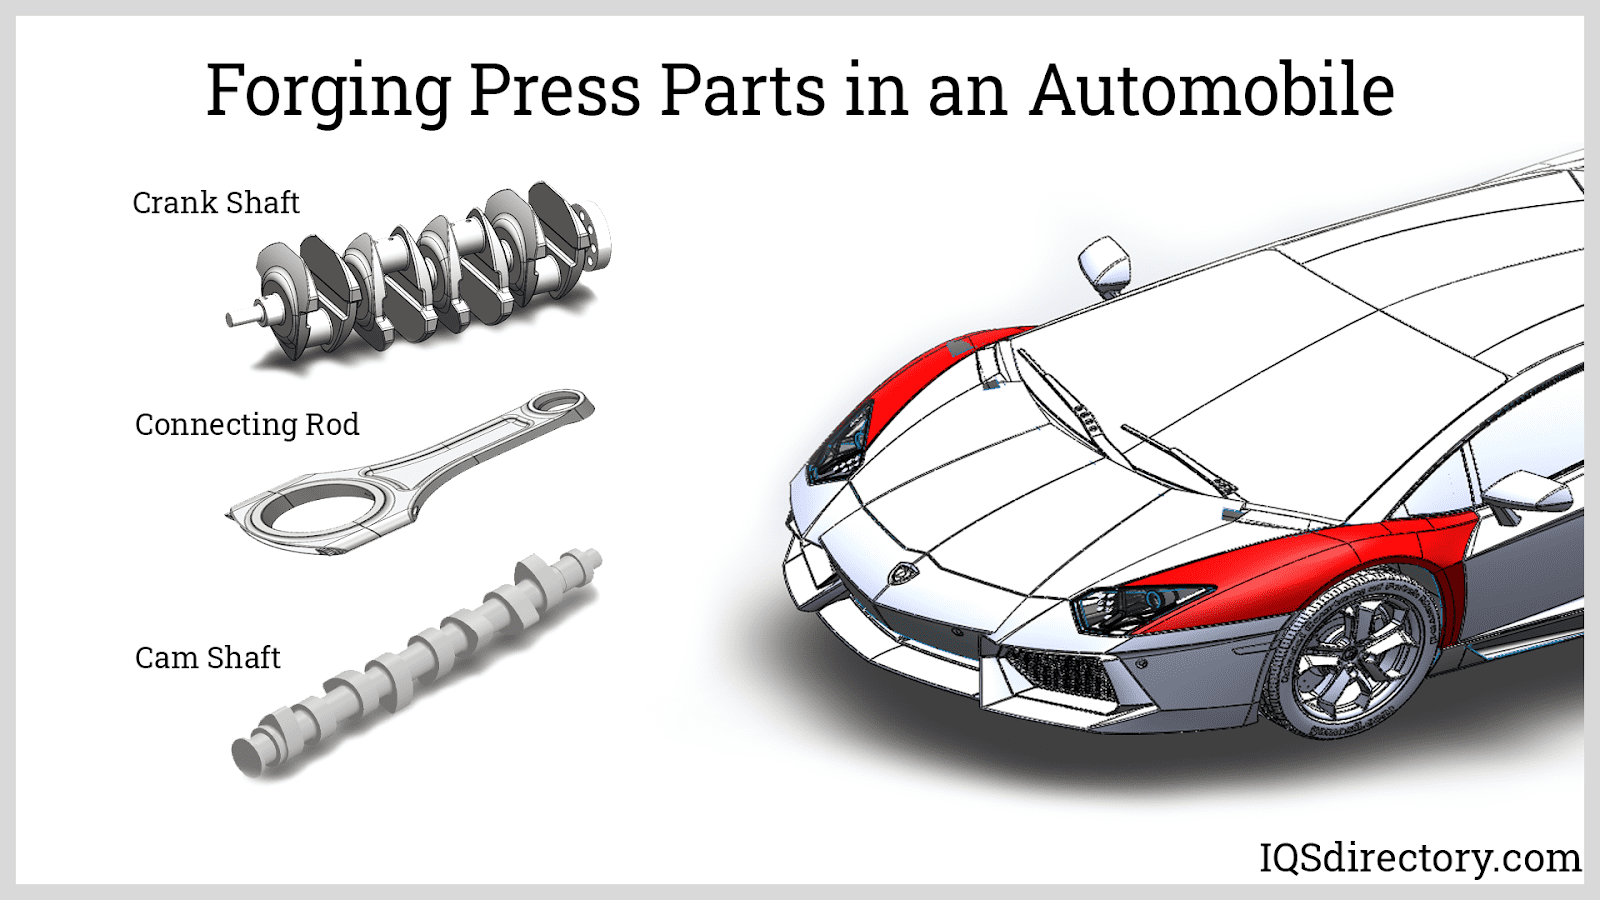 Forging Press Parts in an Automobile